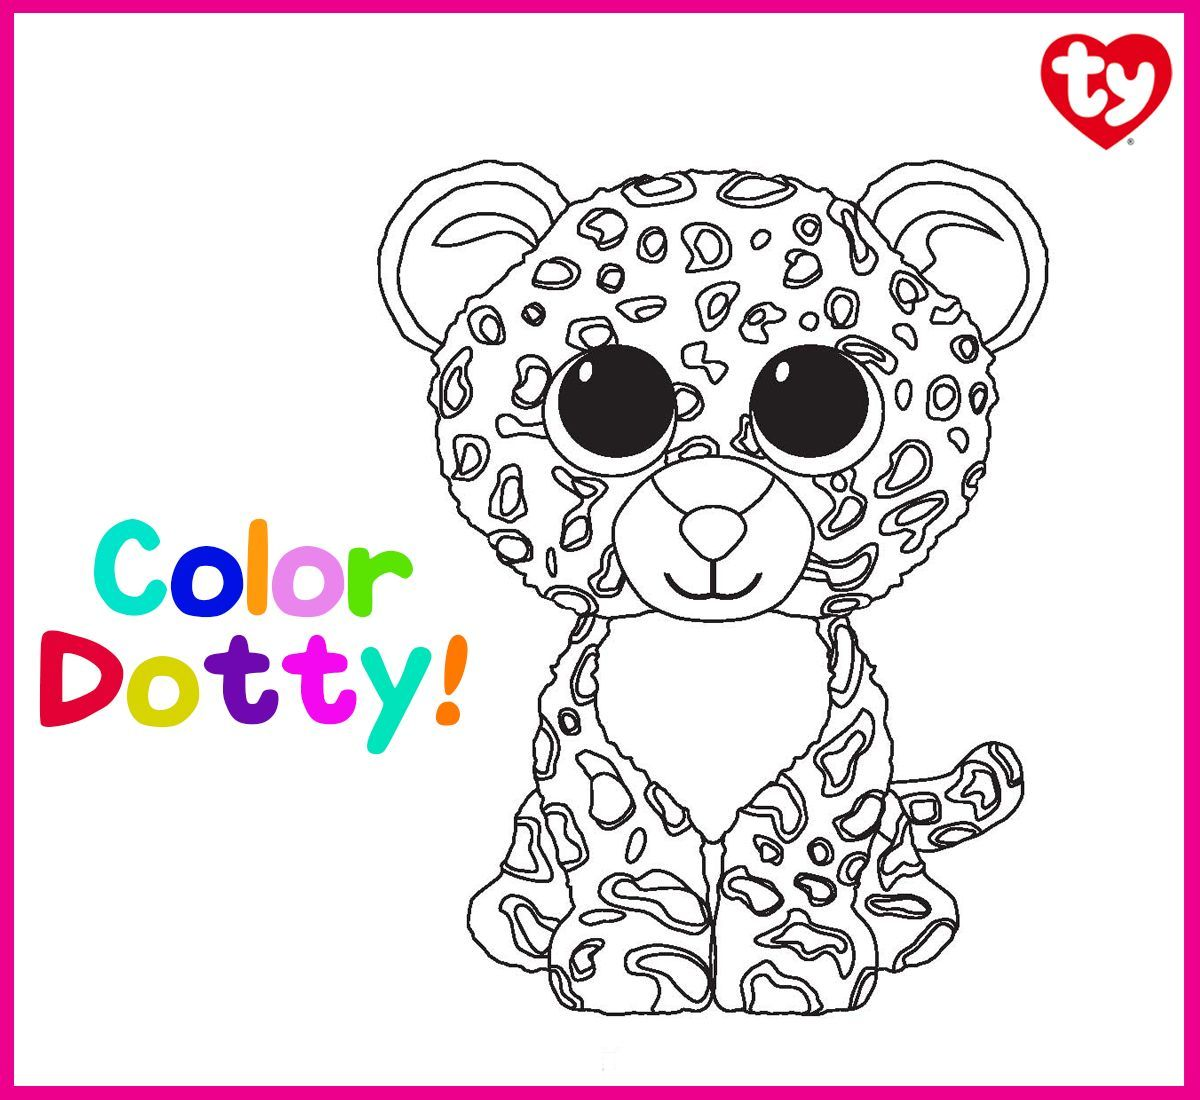 Dotty Has Lots Of Spots Can You Help Give This Leopard Some Color